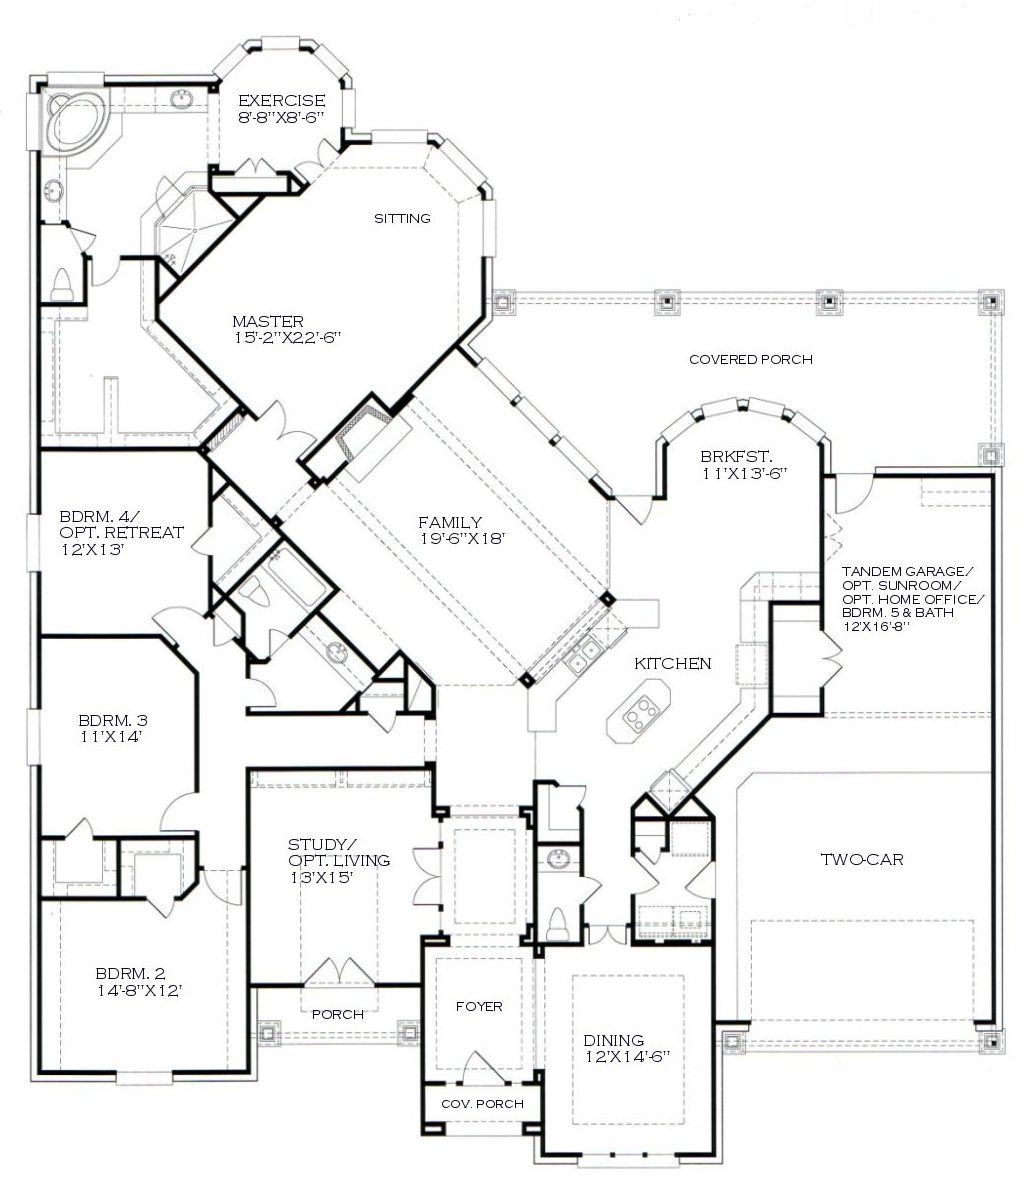 I Never Thought I Would Like A 1 Story Home But The More I Look At This Plan The More I Think It Works Home Decoratin House Plans How To Plan Floor